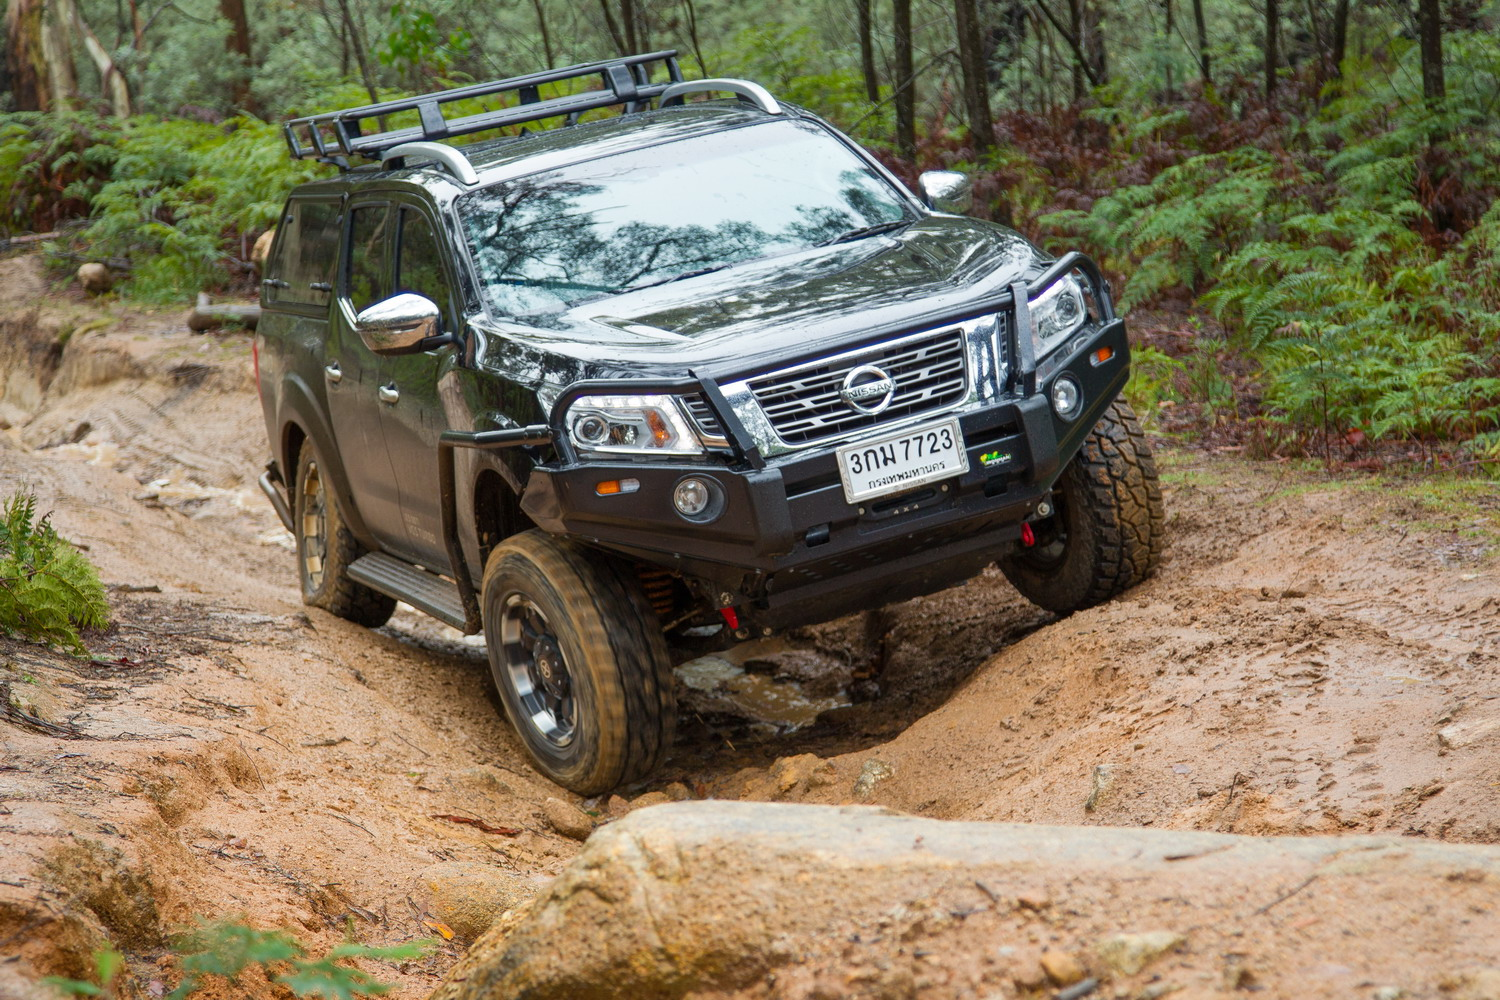 2018 nissan ute. fine ute to sum up the np300 navara is looking like a decent option if you want  modern ute that good offroad and weighs bit less than average  on 2018 nissan